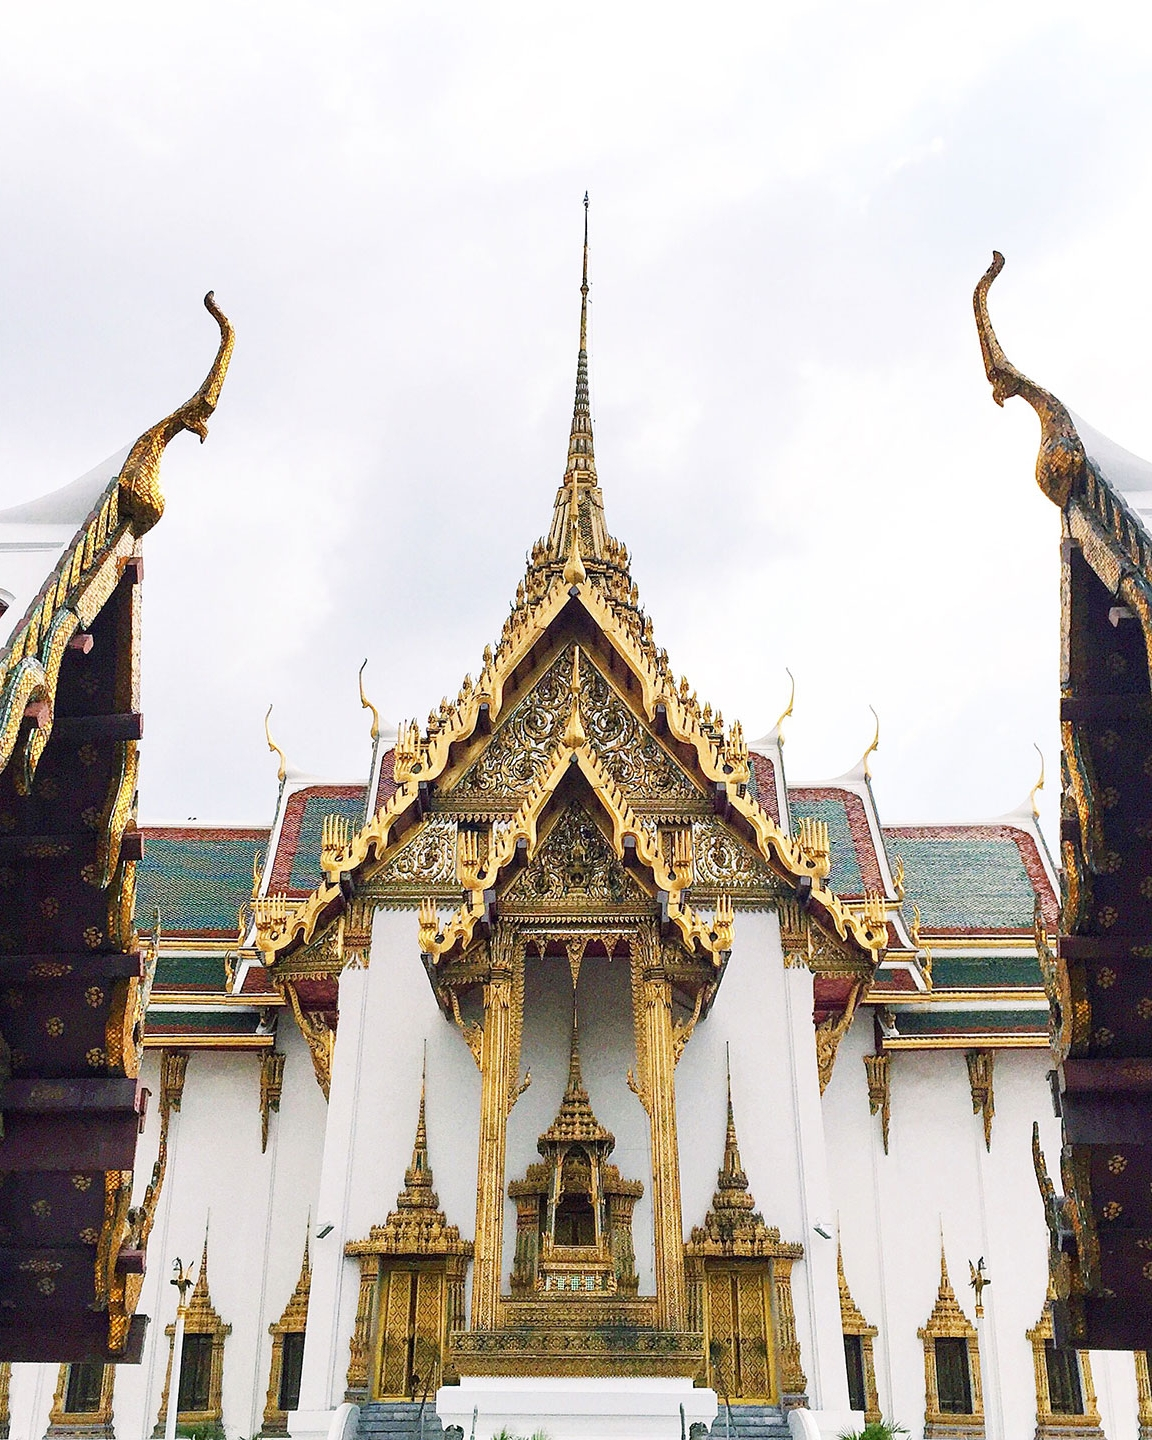 THE GRAND PALACE:    The Grand Palace   has been the royal residence of the kings of Siam since 1782. The intricate and beautiful Thai architecture makes it the most famous site in Bangkok.